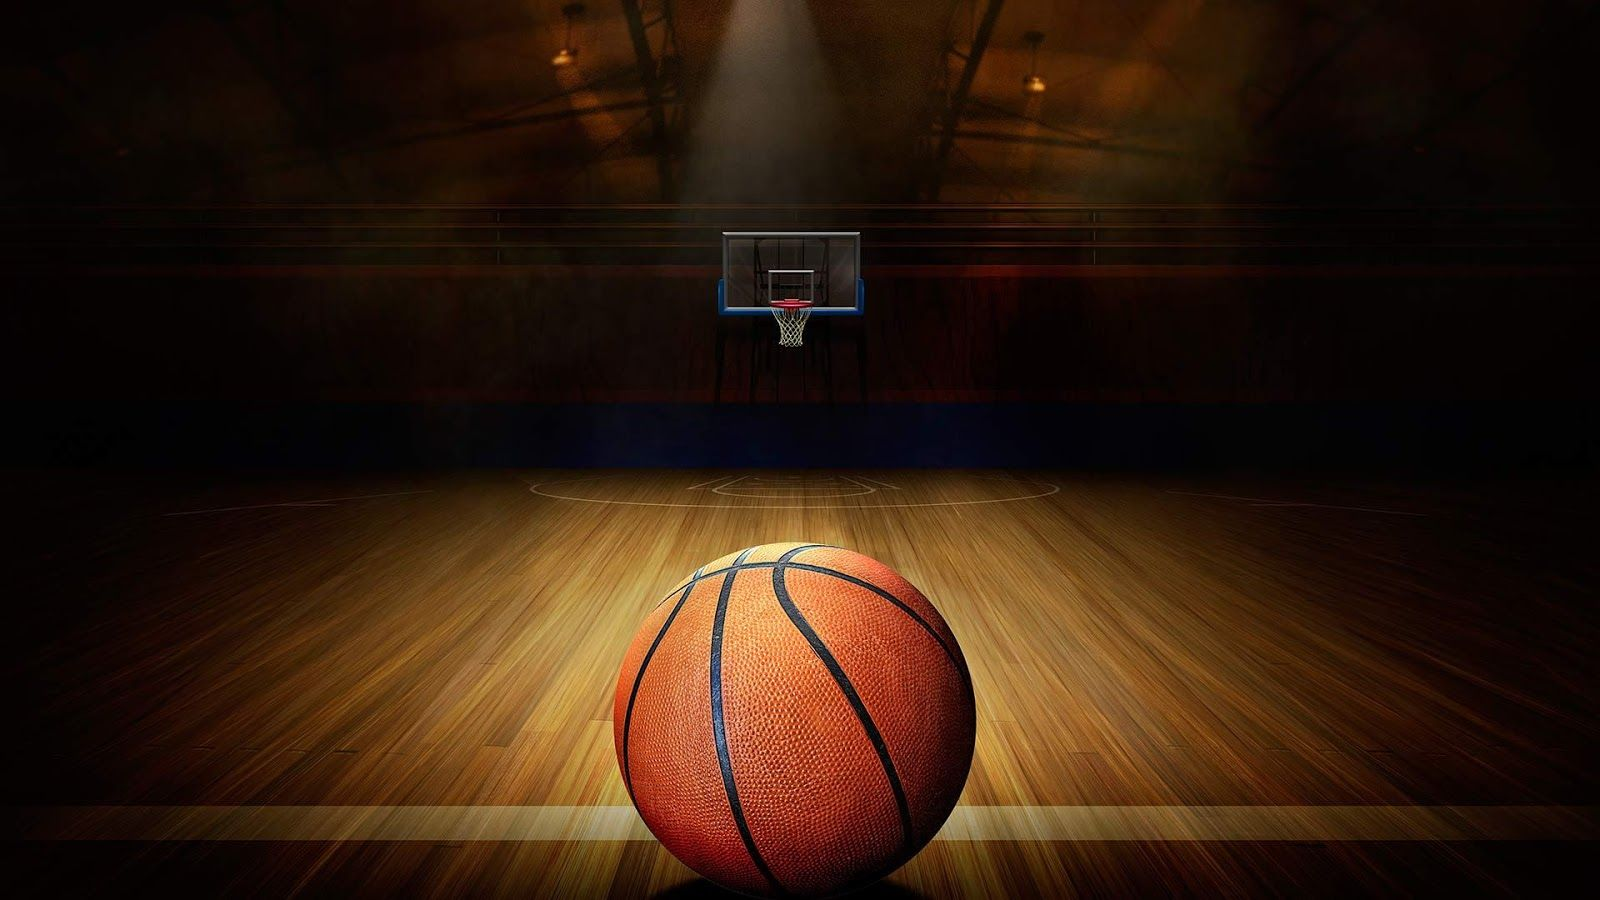 Basketball Wallpapers   Top Basketball Backgrounds 1600x900